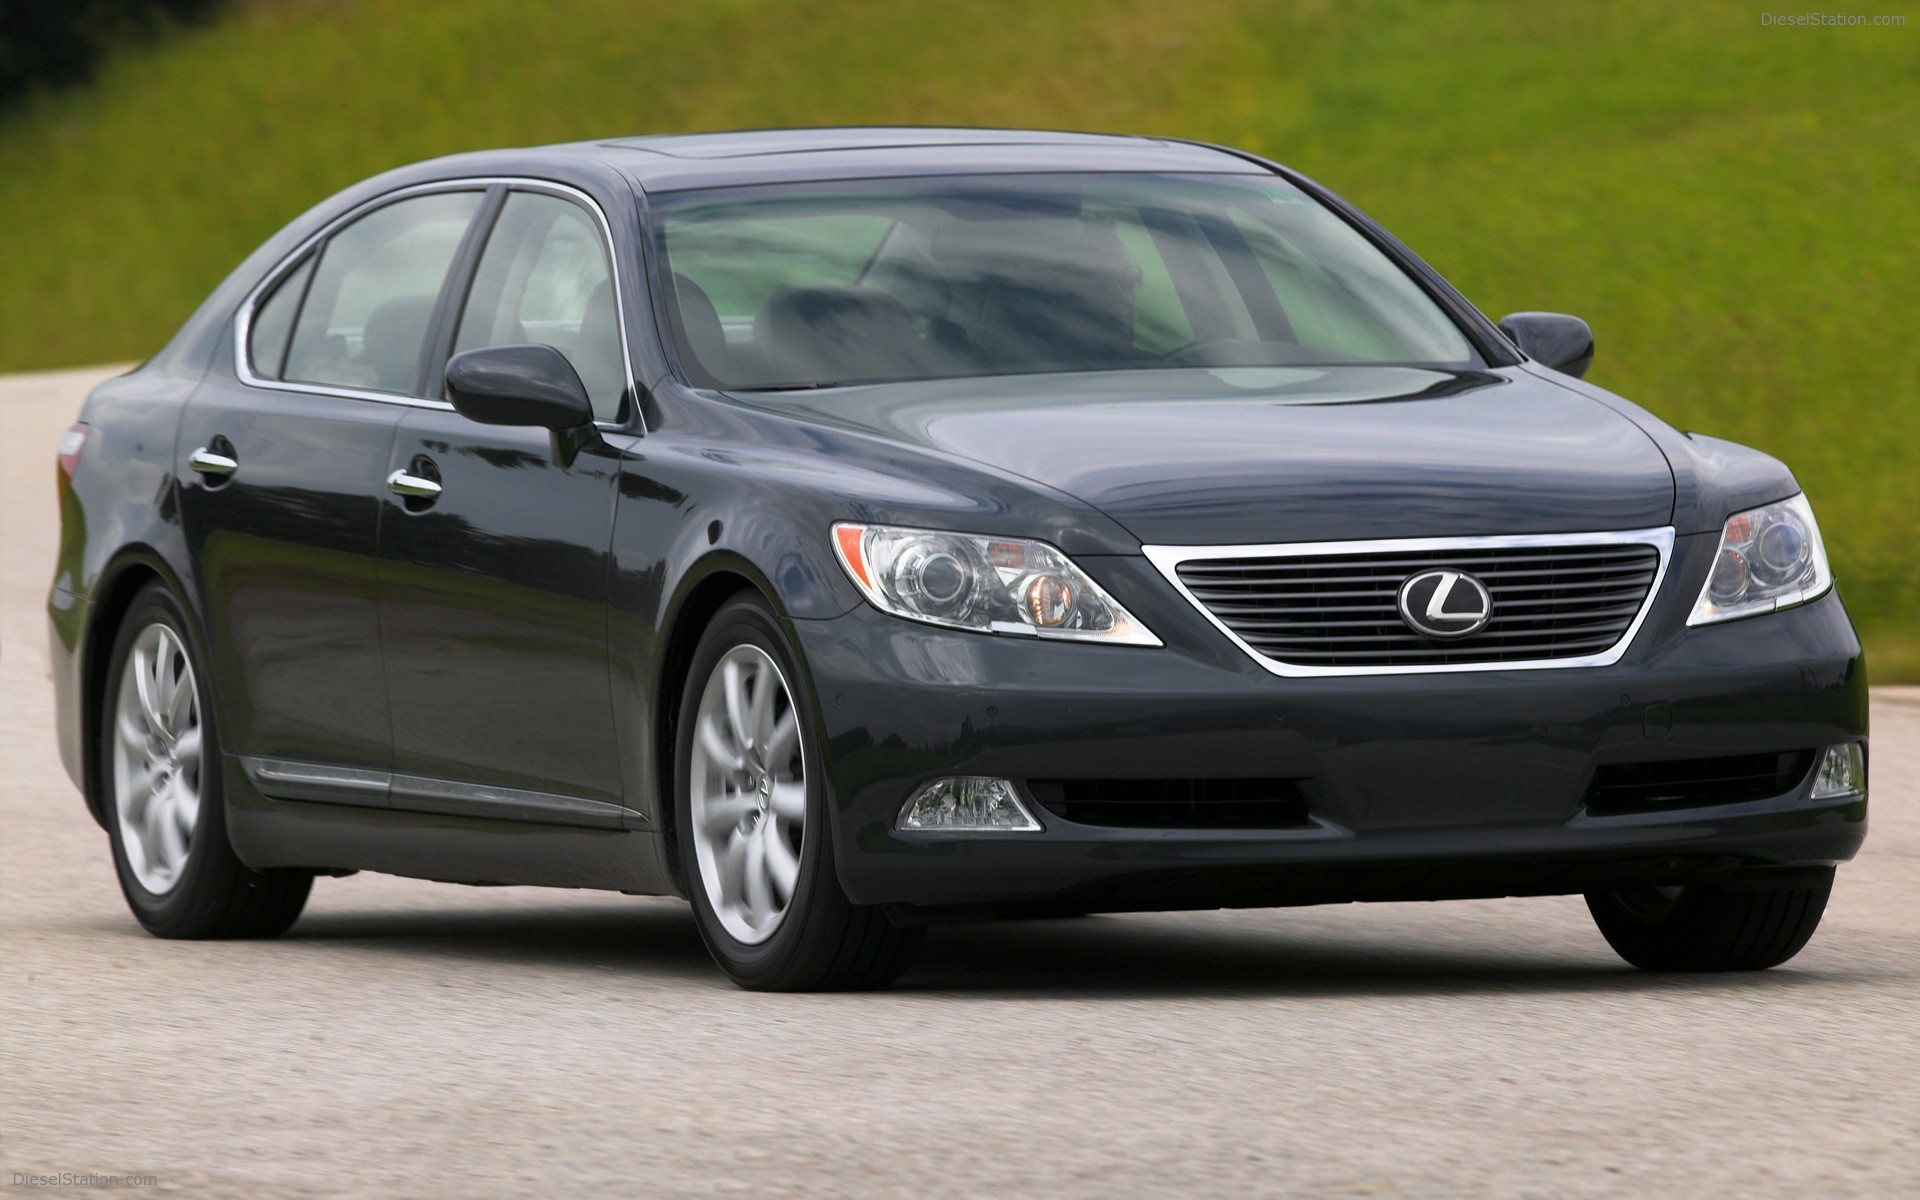 Lexus ls 460 l 2008 photo - 4